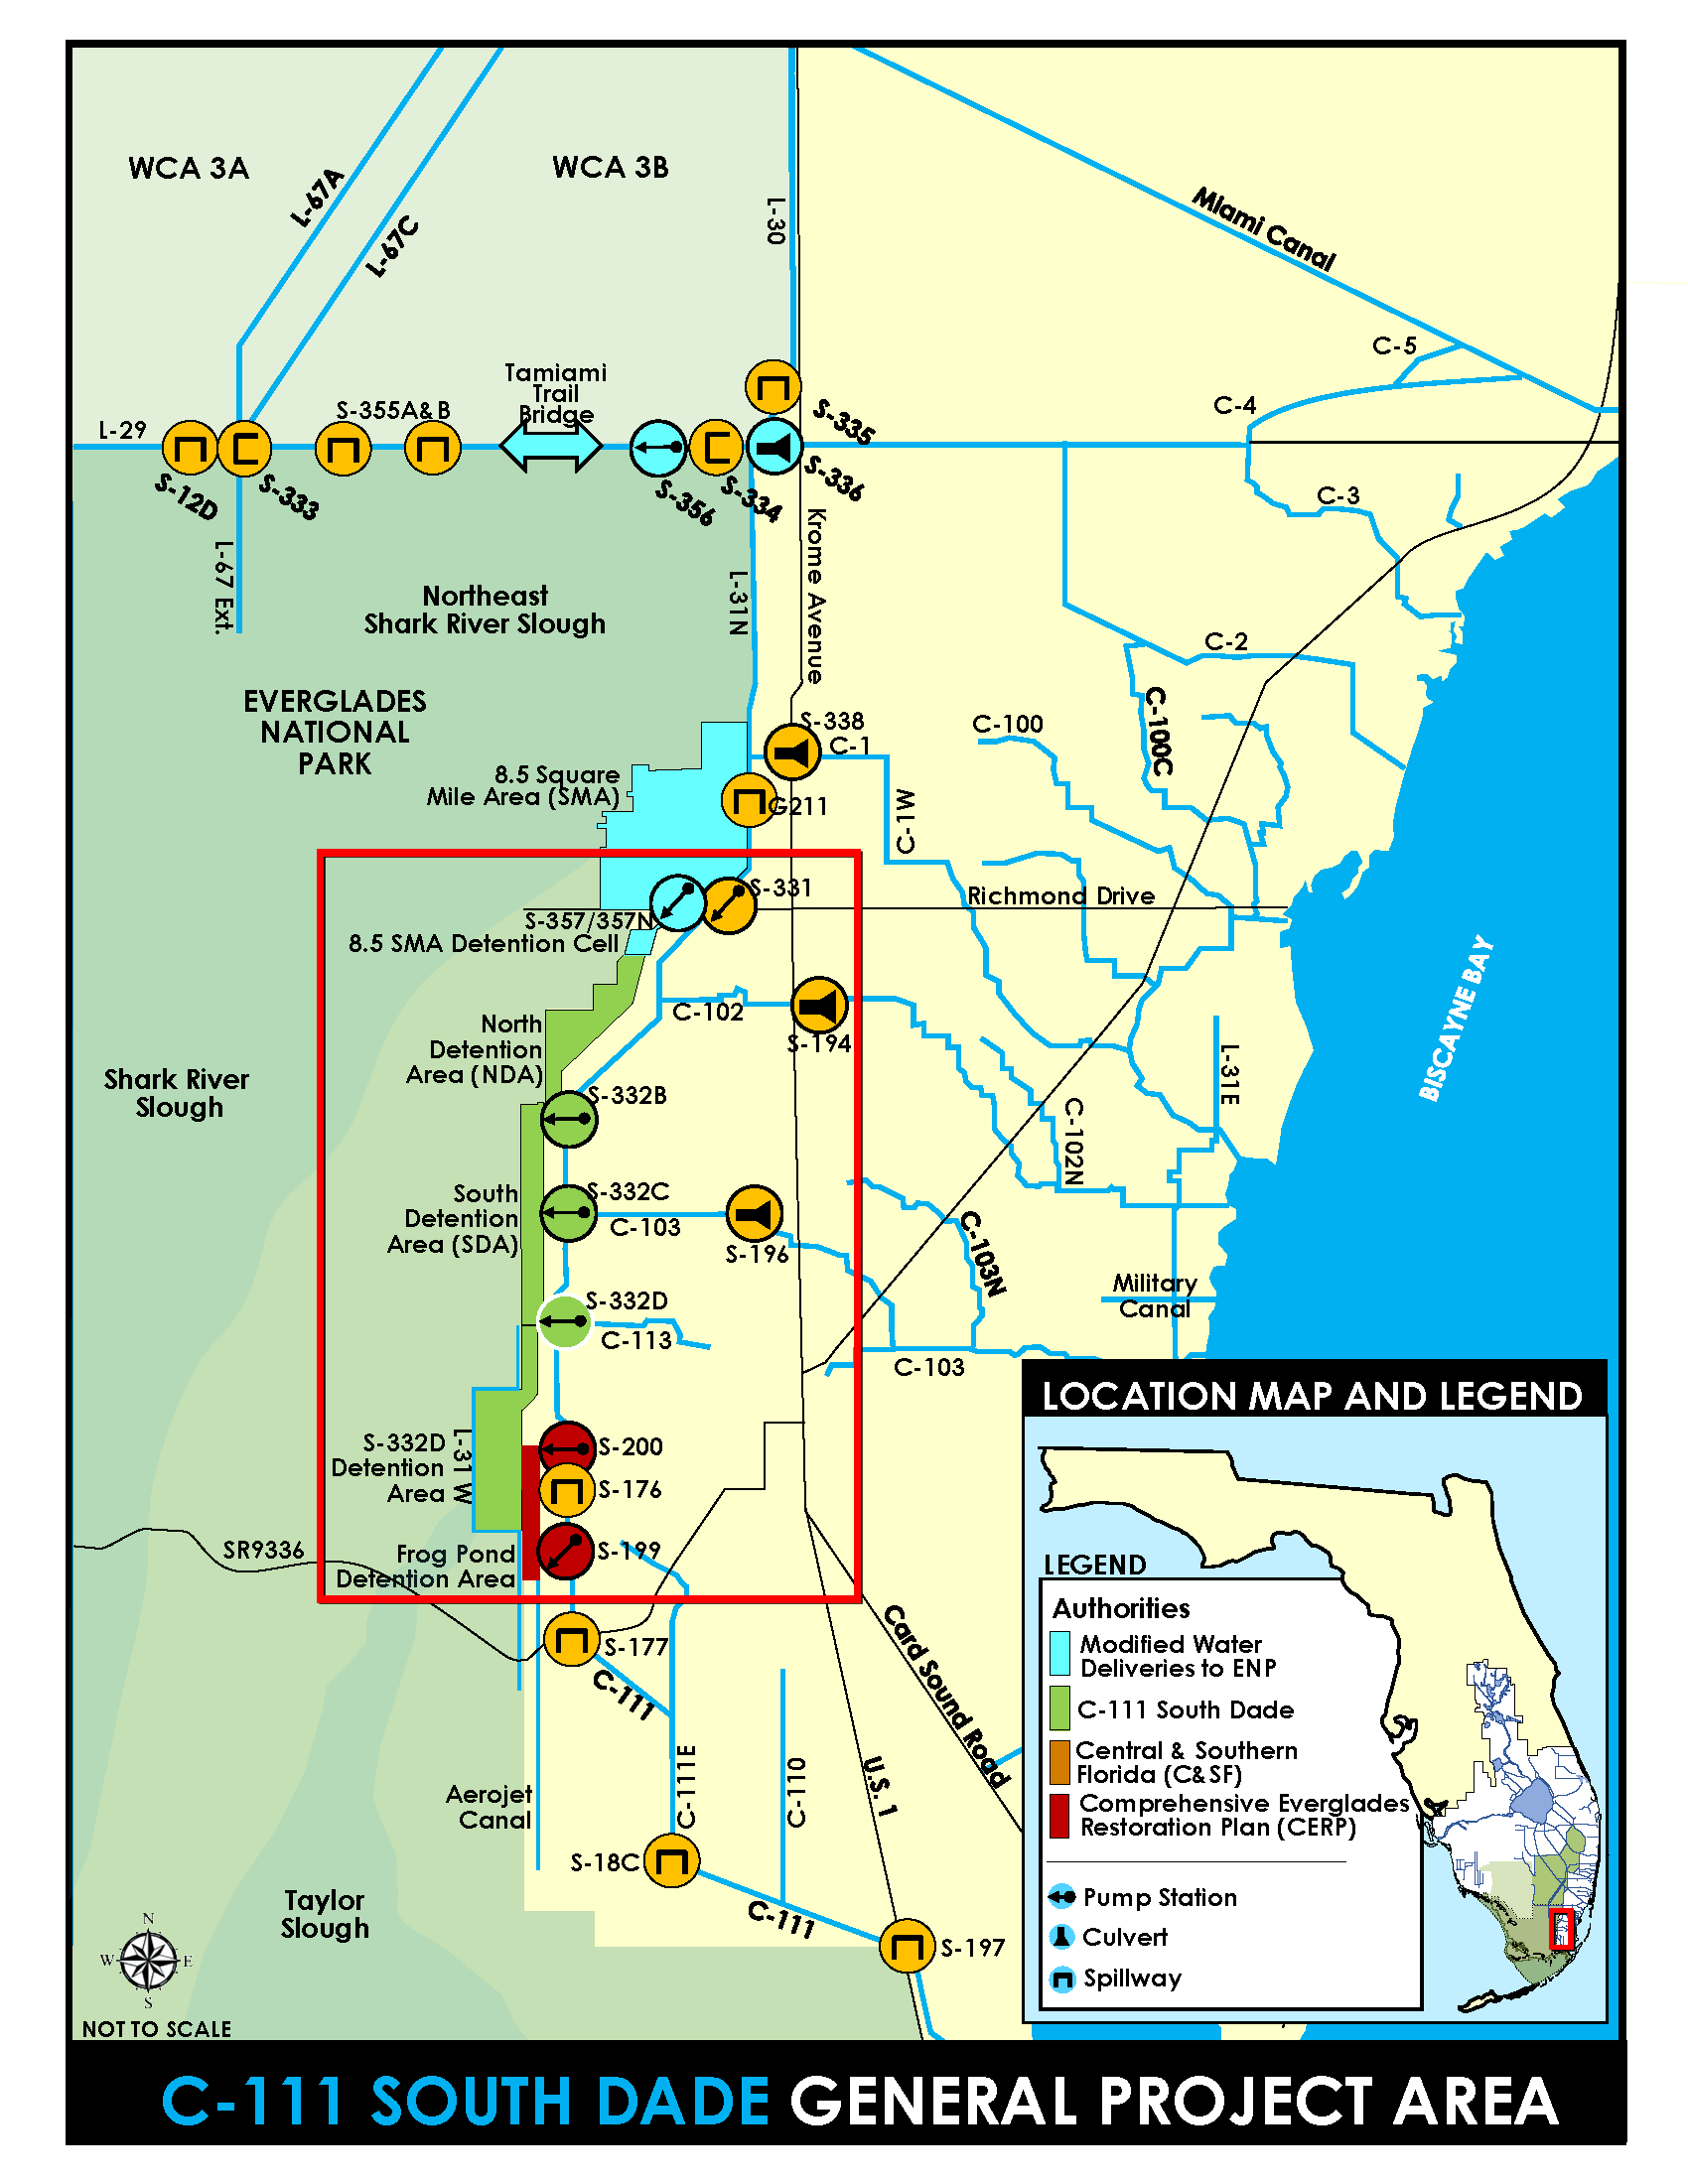 map of C-111 South Dade project area